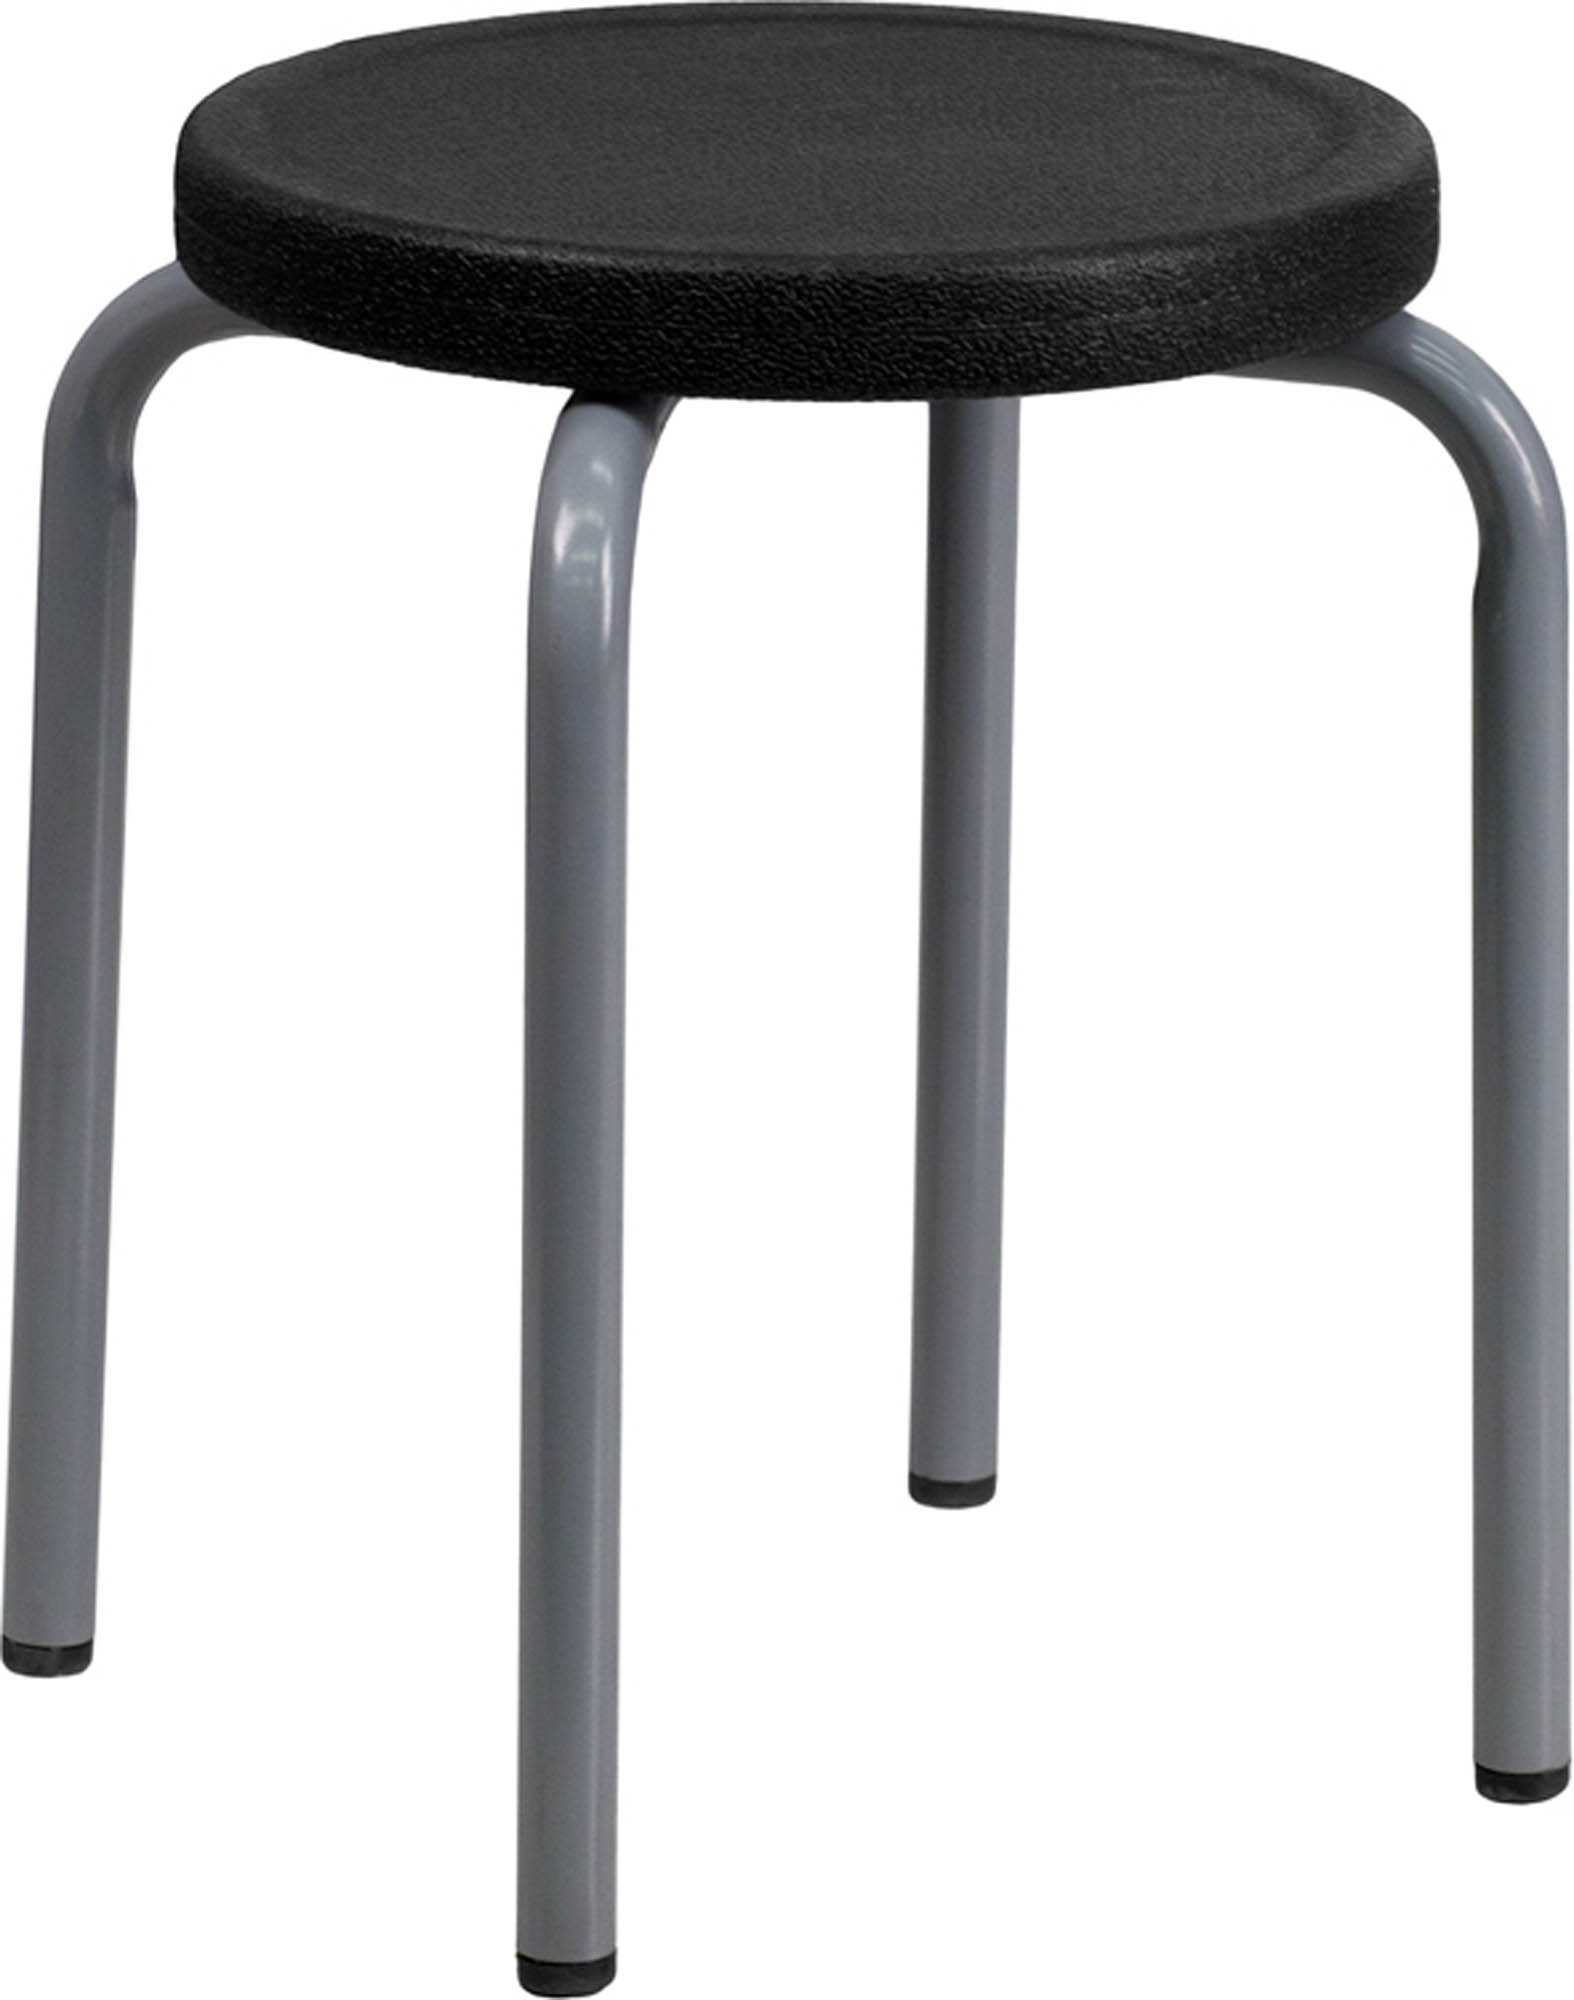 Offex YK01B-GG Stackable Stool with Black Seat and Silver Powder Coated Frame